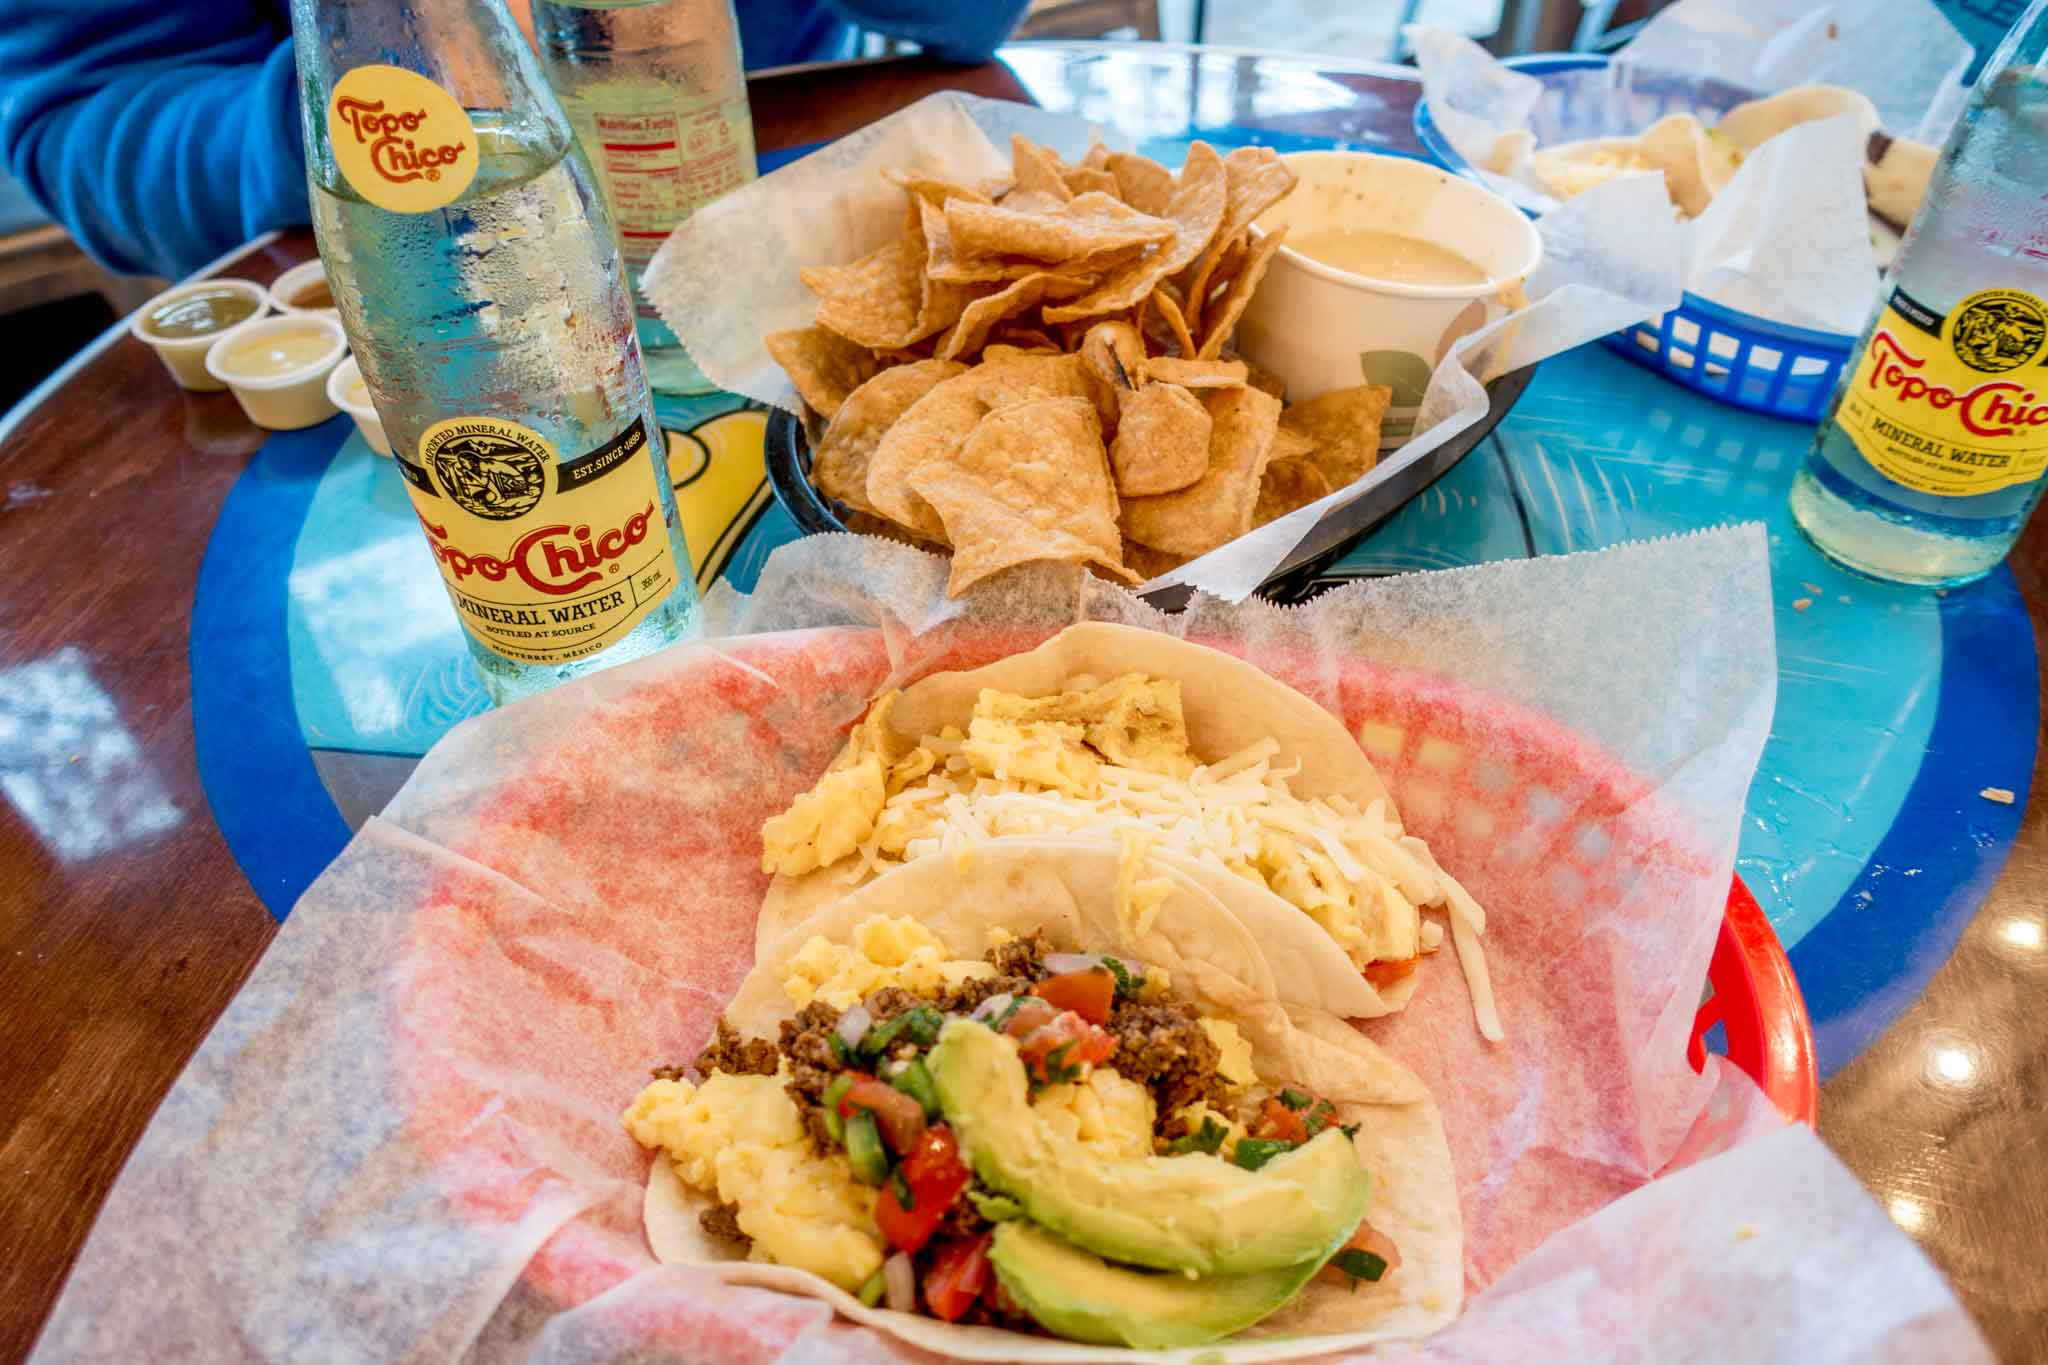 Breakfast tacos, chips, queso, and Topo Chico on a table at Tacodeli